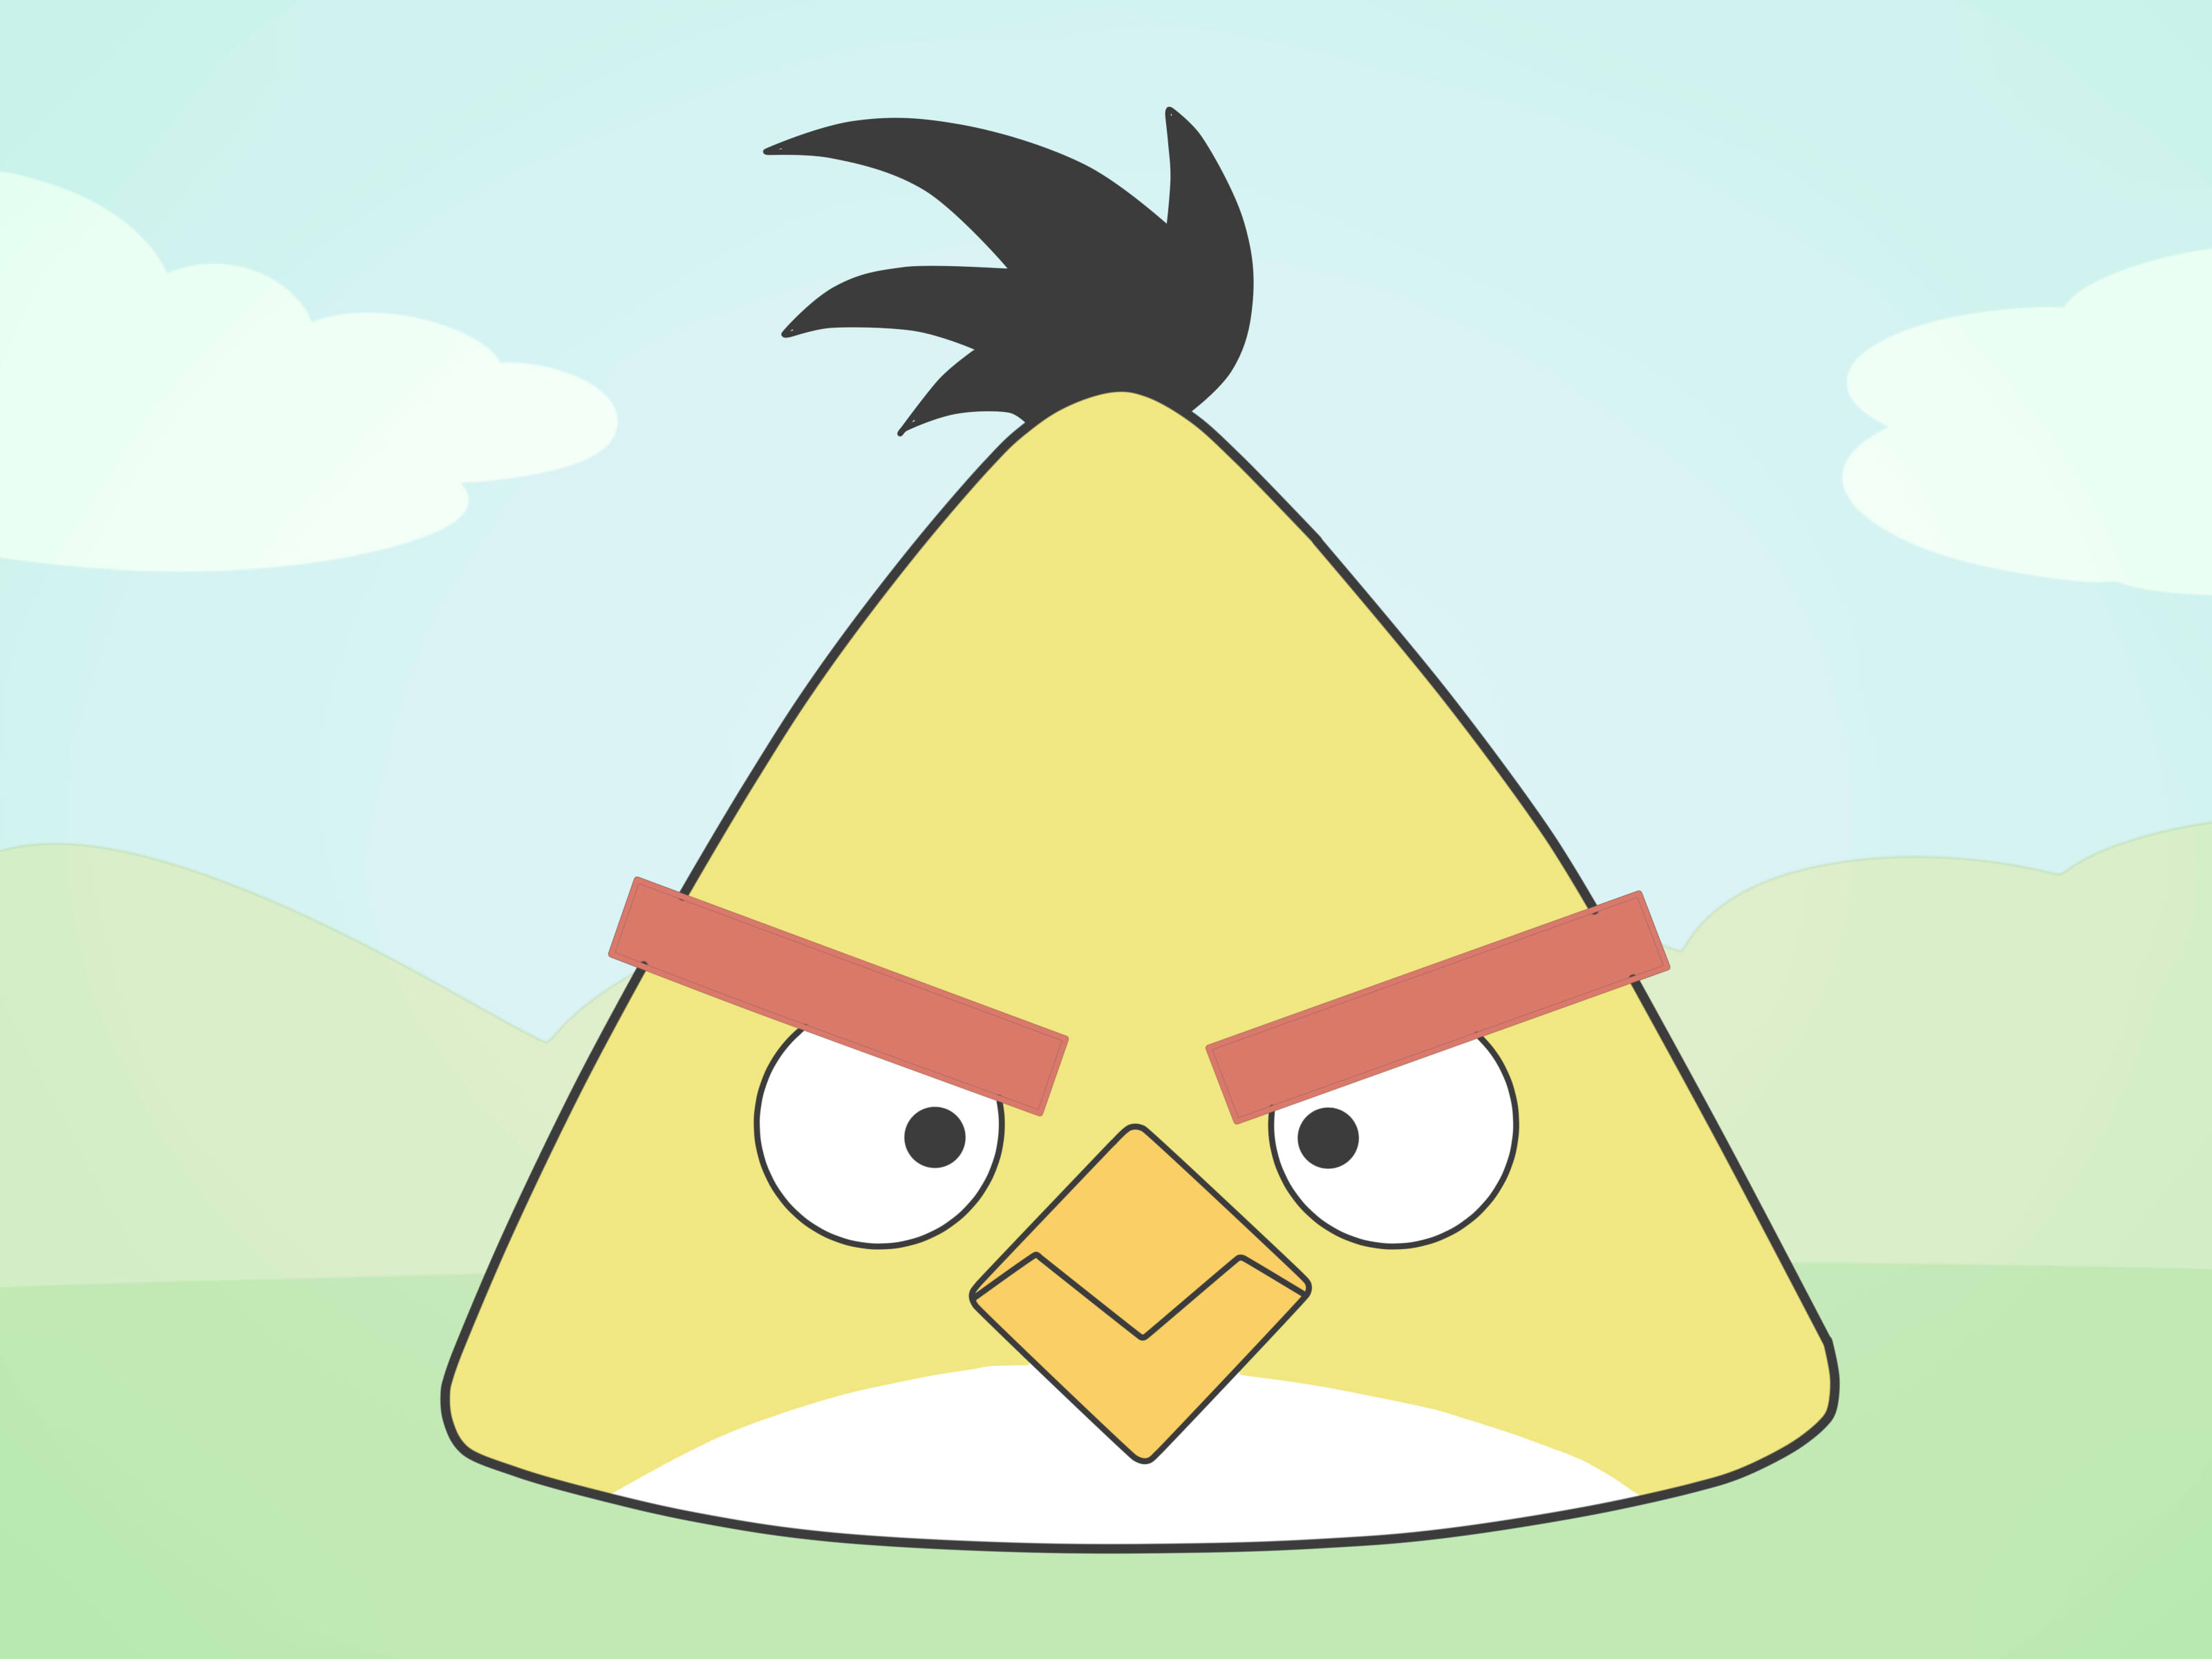 3200x2400 How To Draw An Angry Bird (Emotions) 15 Steps (With Pictures)